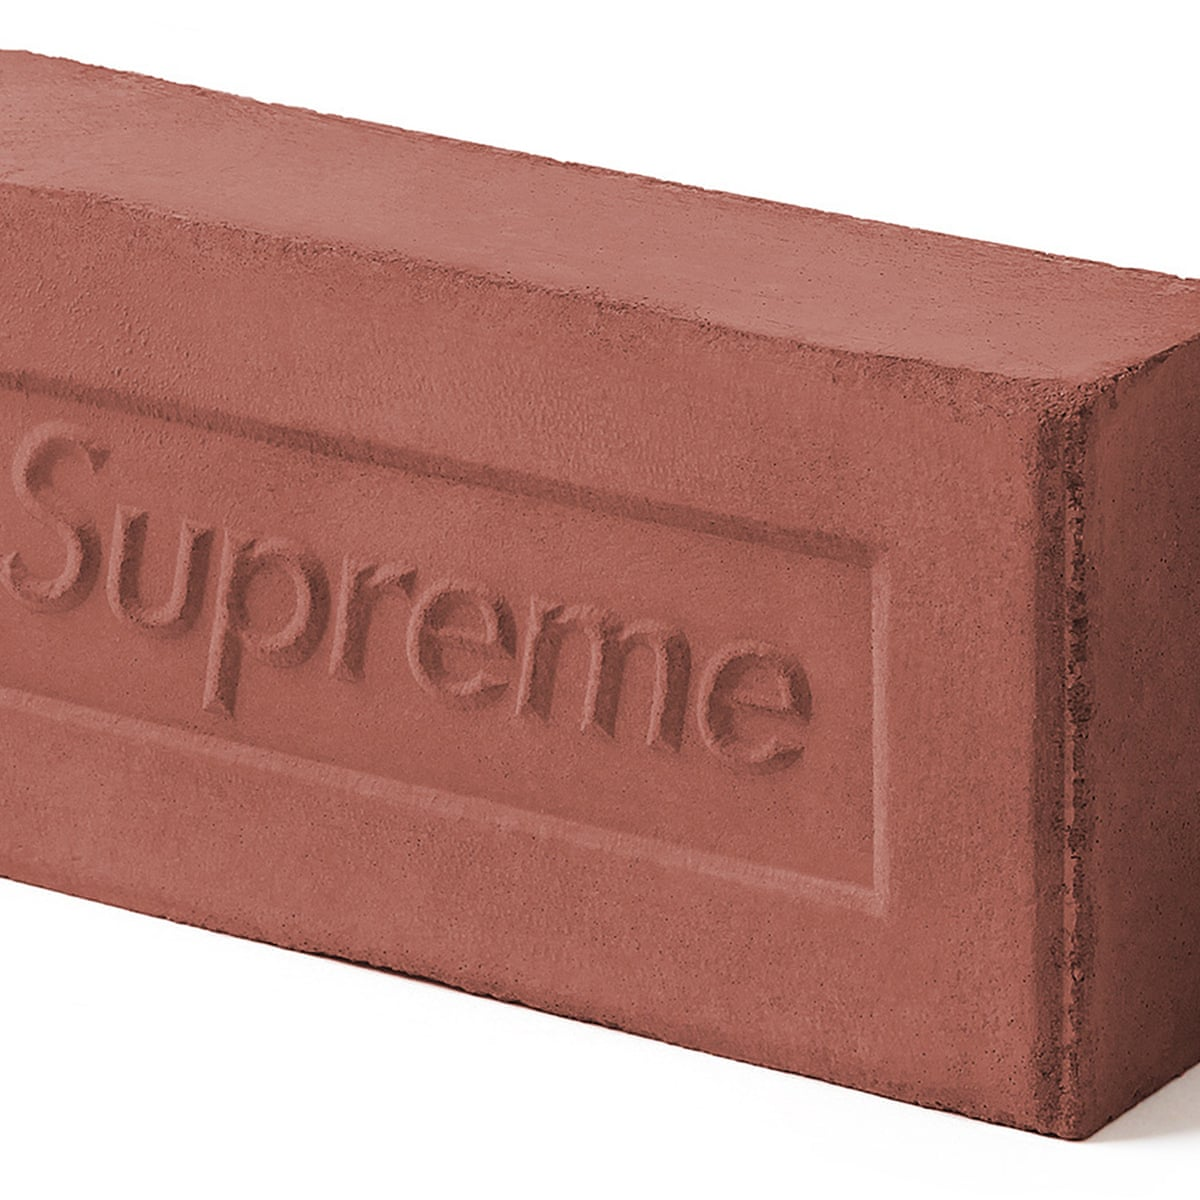 Red Clay Brick On Sale For Up To 1 000 On Ebay Ebay The Guardian